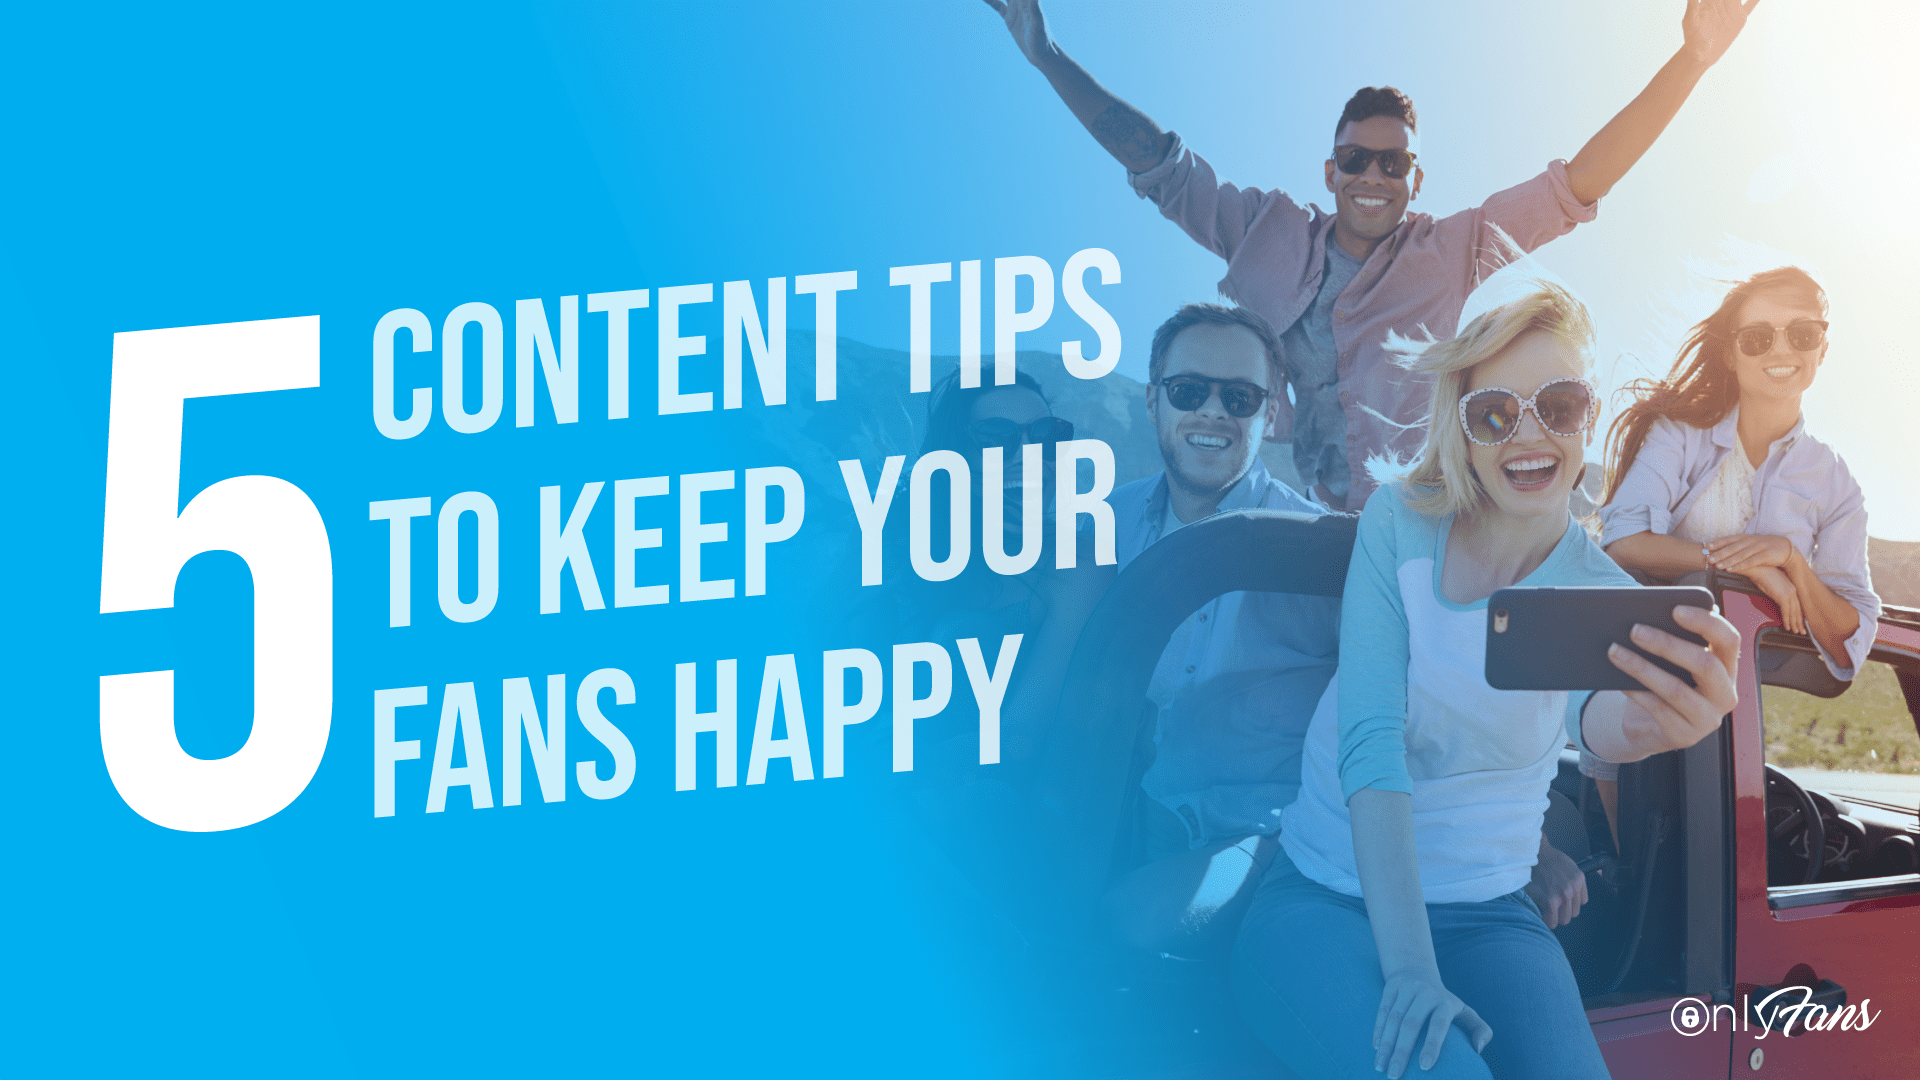 5 content tips to keep your fans happy